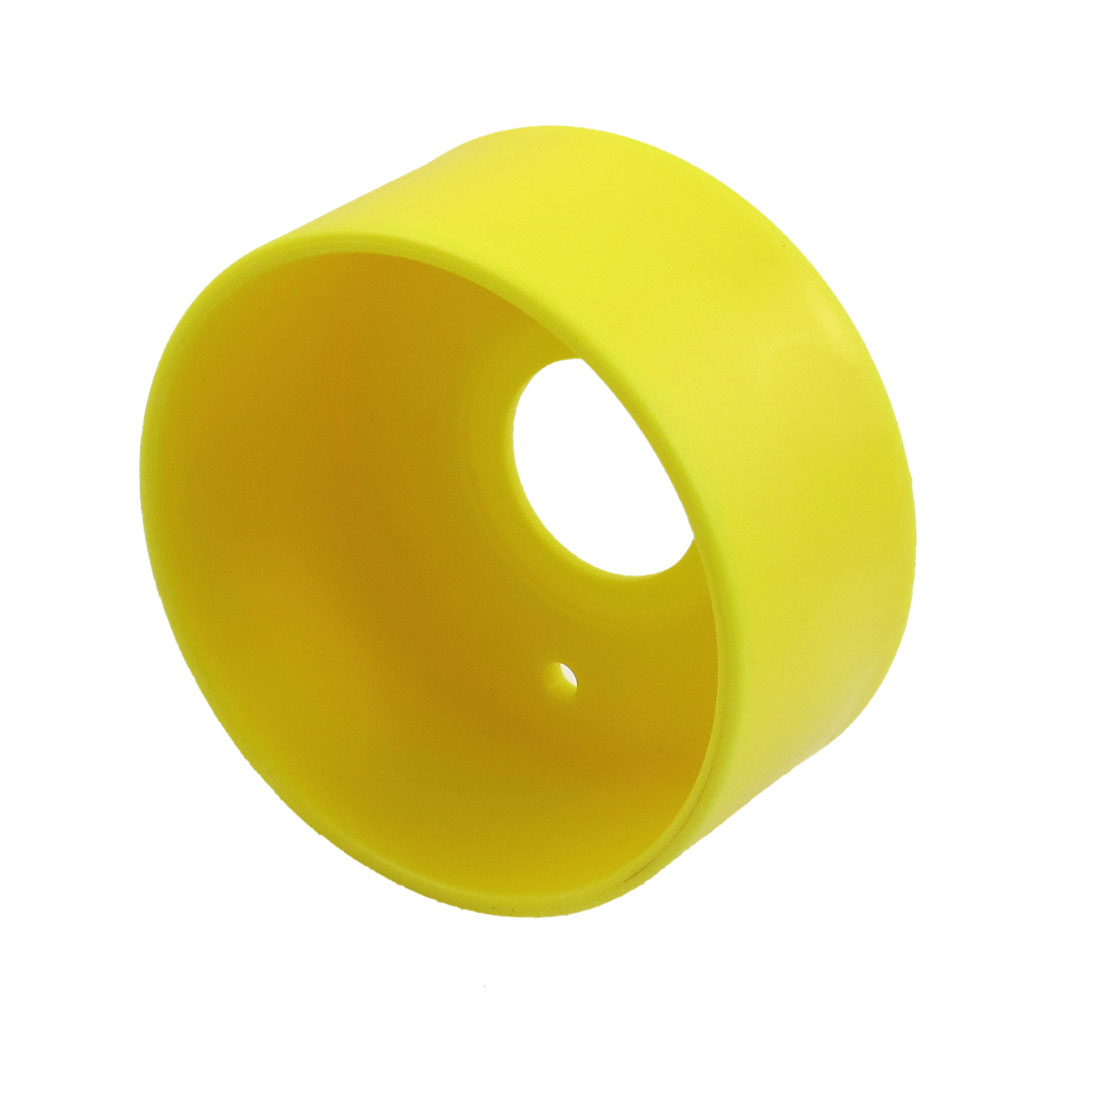 22mm Install Hole Yellow Plastic Protective Cover for Push Switch Button